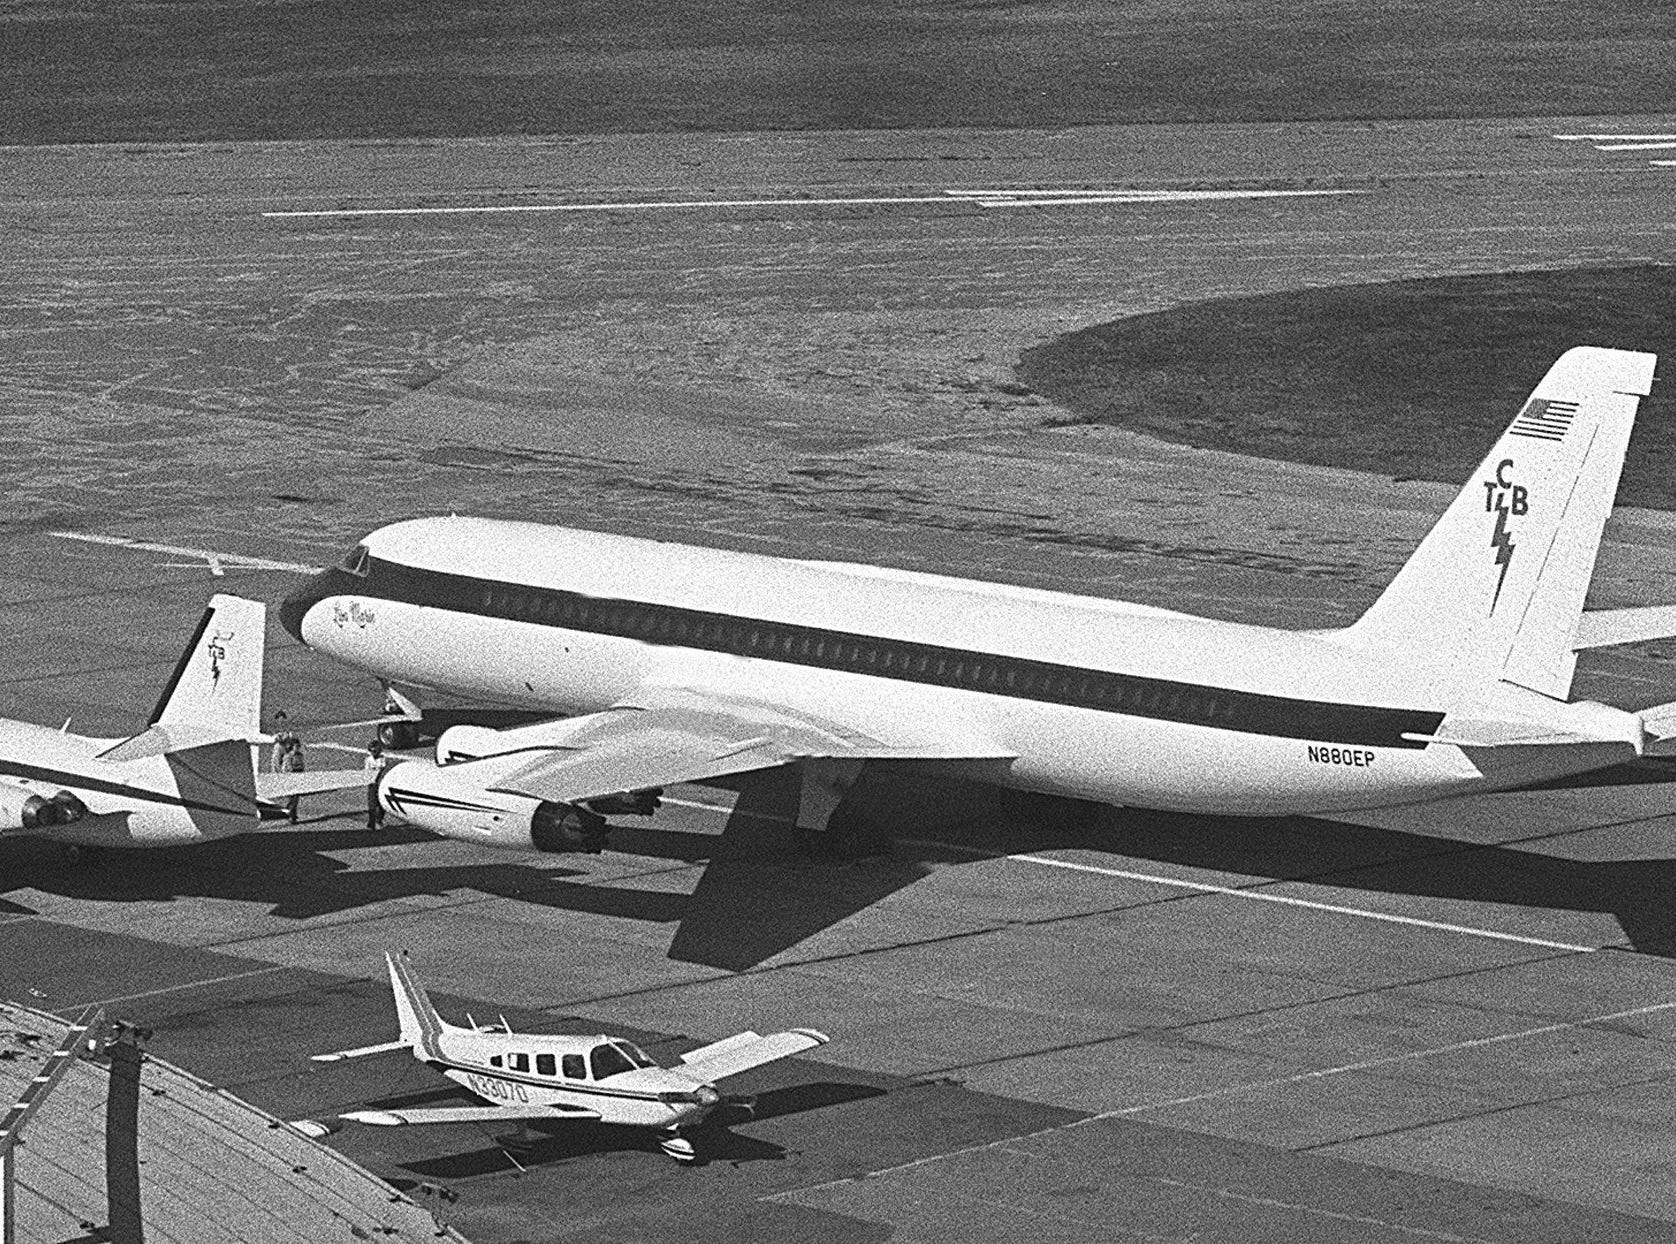 """The Lisa Marie, newest craft in Elvis Presley's small air fleet, is at Memphis International Airport on 12 Nov 1975 getting final touches before being put to use for touring. The converted Convair 880, formerly used by Delta Air Lines, is named for the entertainer's daughter. It was bought for $1 million and it took another $750,000 to fix it to his taste in Forth Worth, TX. While not as elaborate as some reports have had it, the plane should be quite comfortable for the Memphian and his personal crew. It has a galley with stove, refrigerator and coffee maker, a private bedroom with queen-size bed, a dining room with eight chairs, two sitting rooms, two bathrooms with gold-plated fixtures and a shower in one, plus 29 seats for passengers. It requires a pilot, copilot, flight engineer and stewardess. Elvis also will keep the Lockheed Jetstar (smaller plane at left), a 9-seater, for touring purposes. On tours, he will need to lease a third plane for back-up groups, equipment and wardrobes. He has two other jet planes on the market. The small propeller plane in photograph is not part of his """"air force."""""""